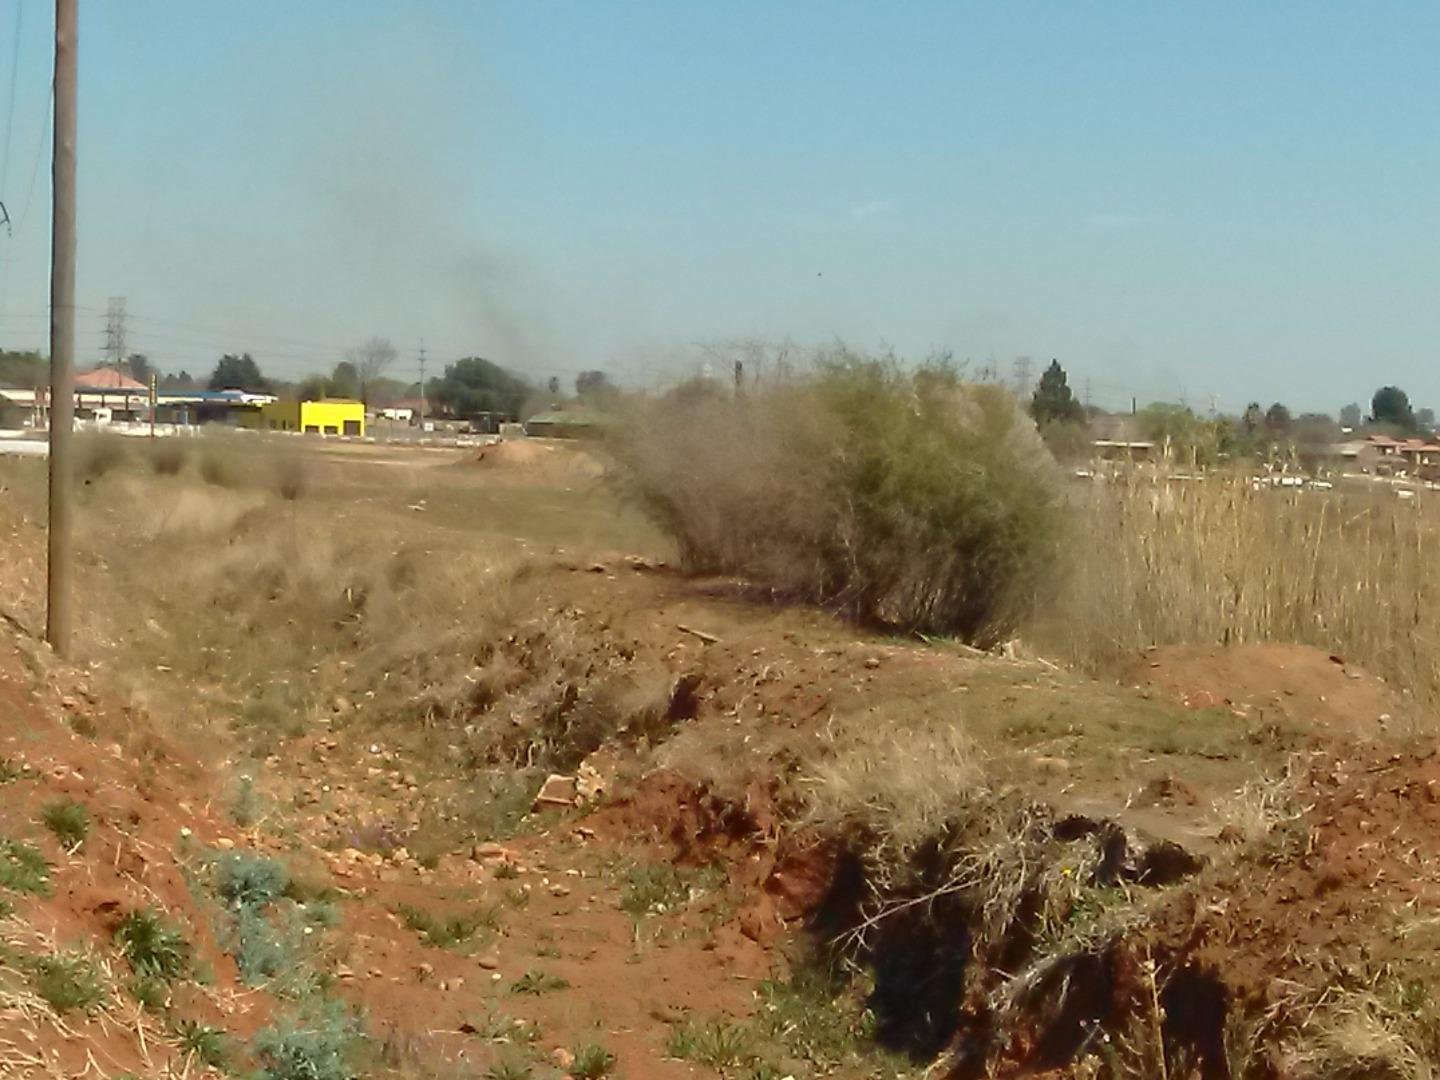 Vacant Land for Sale in Mckay A H, Meyerton - Gauteng